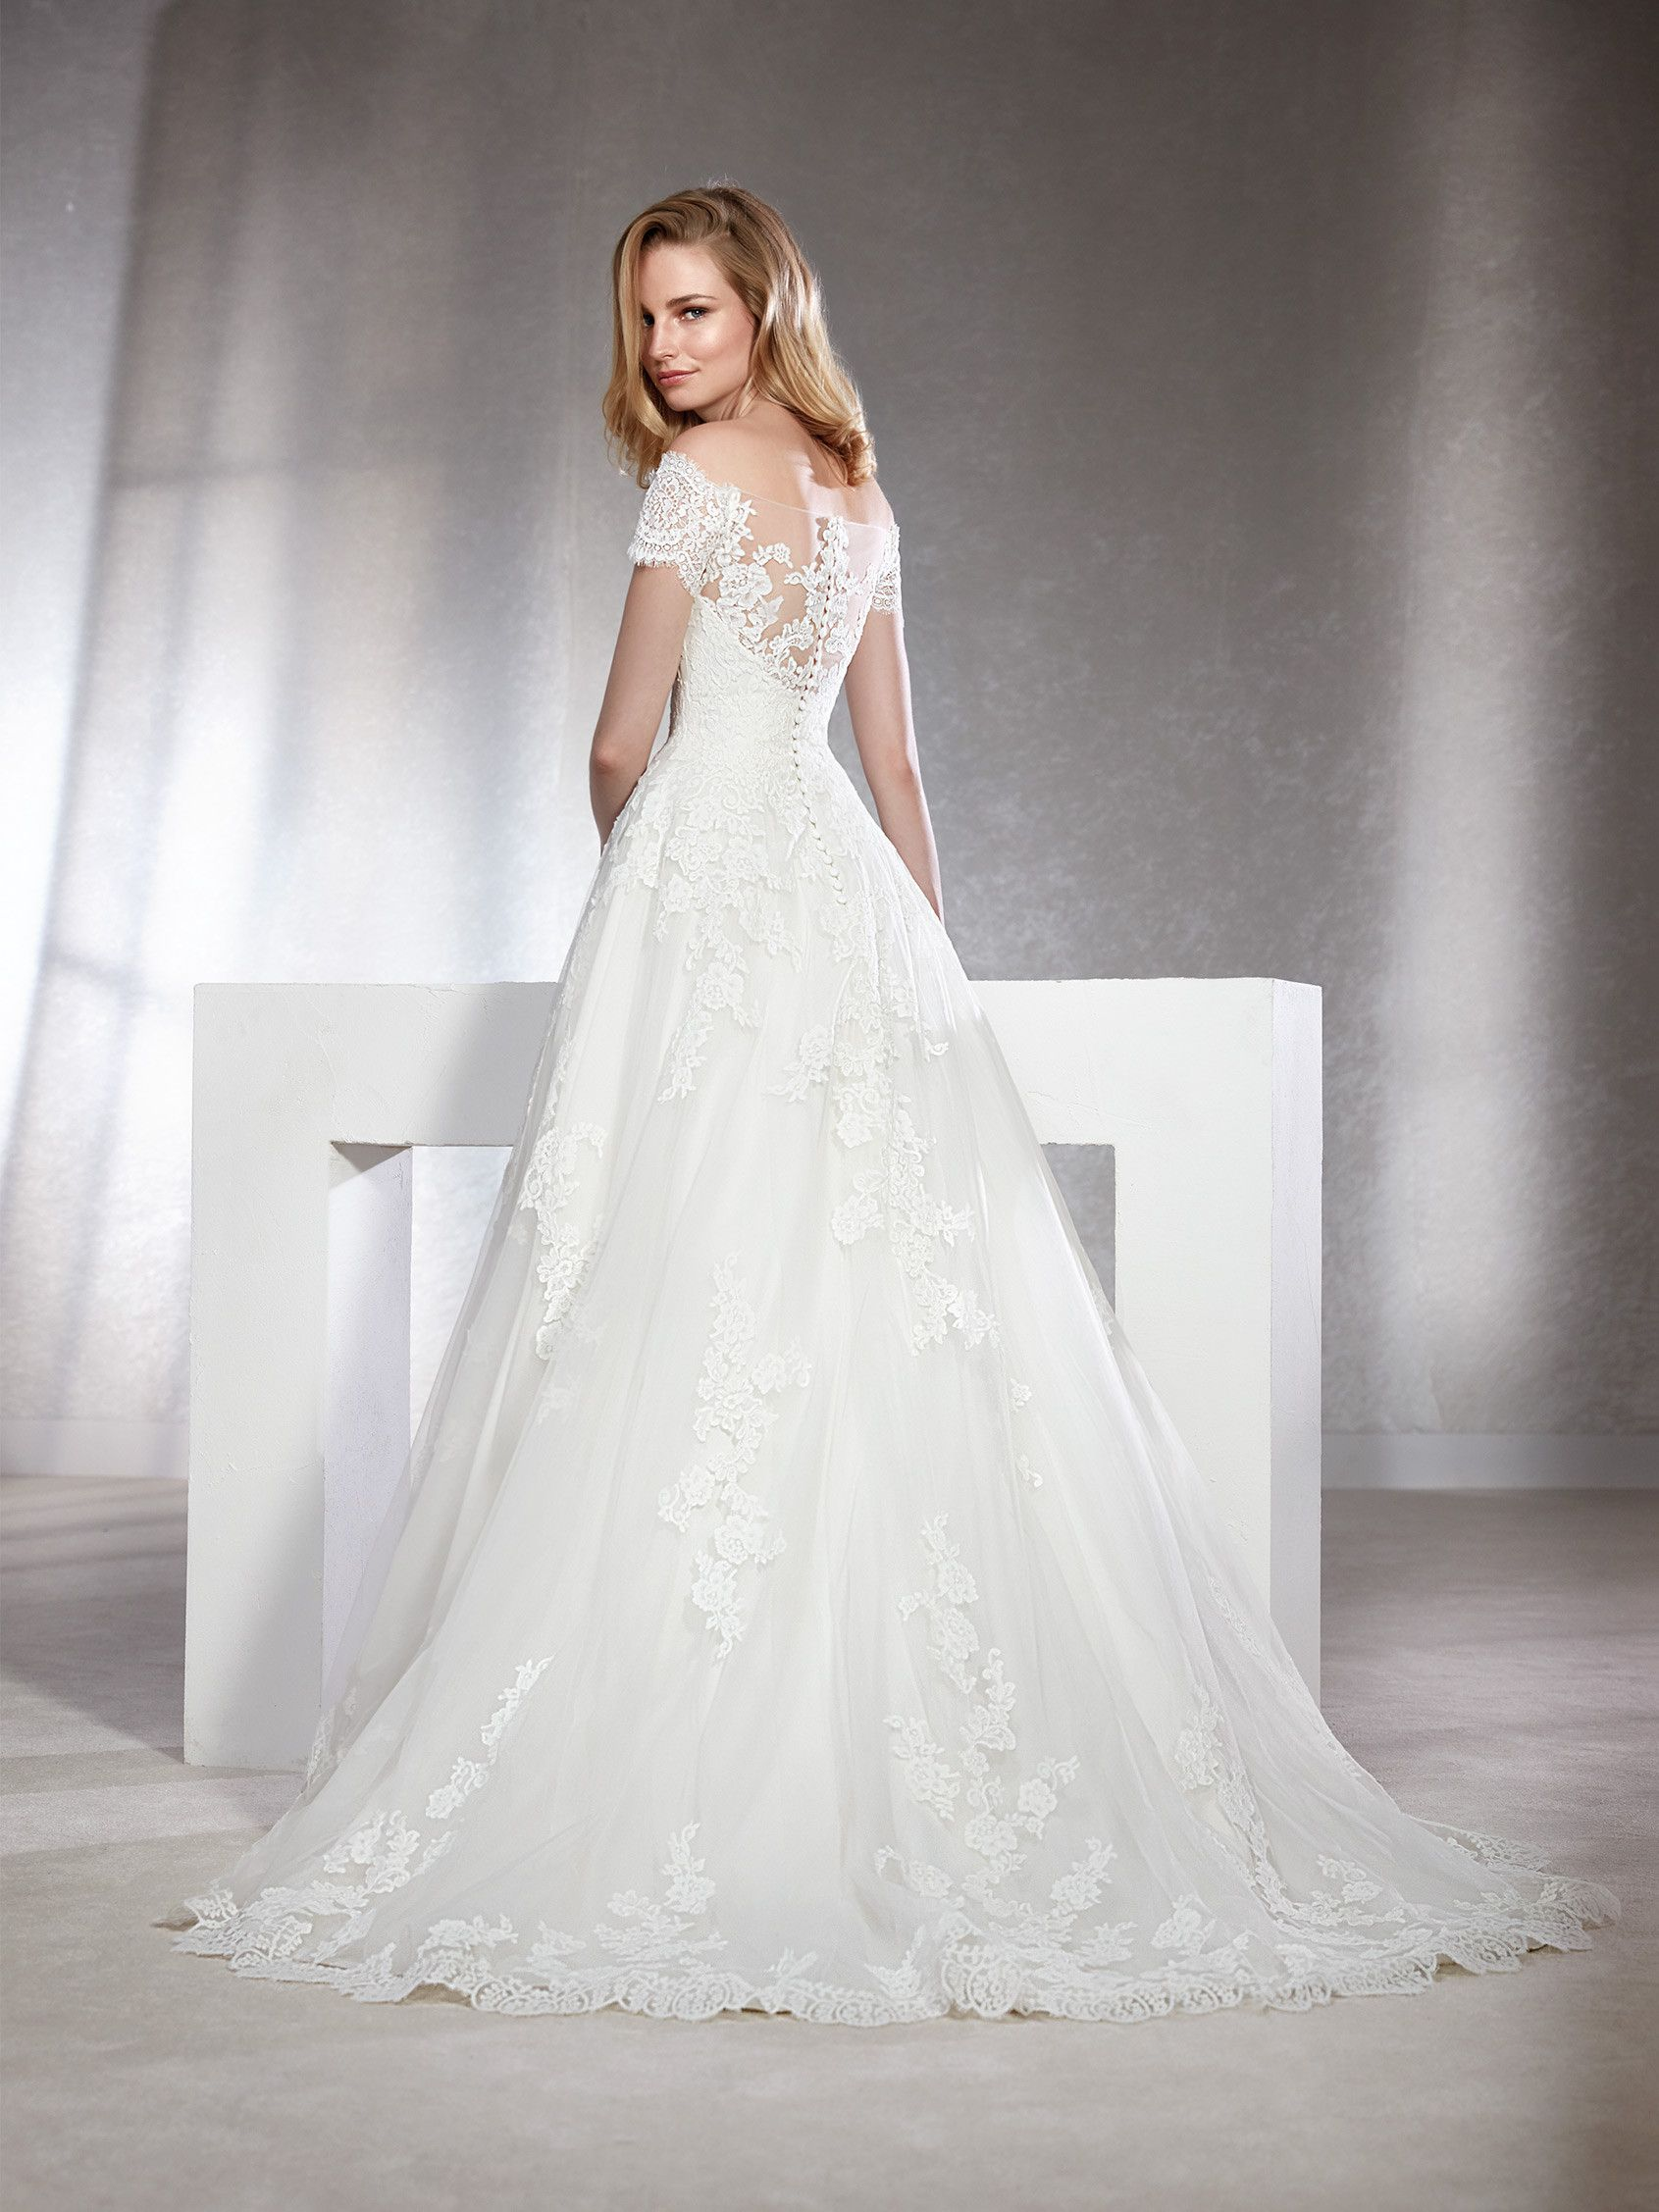 Fabiana prinzessinstil eib u jjpr wedding wedding dresses